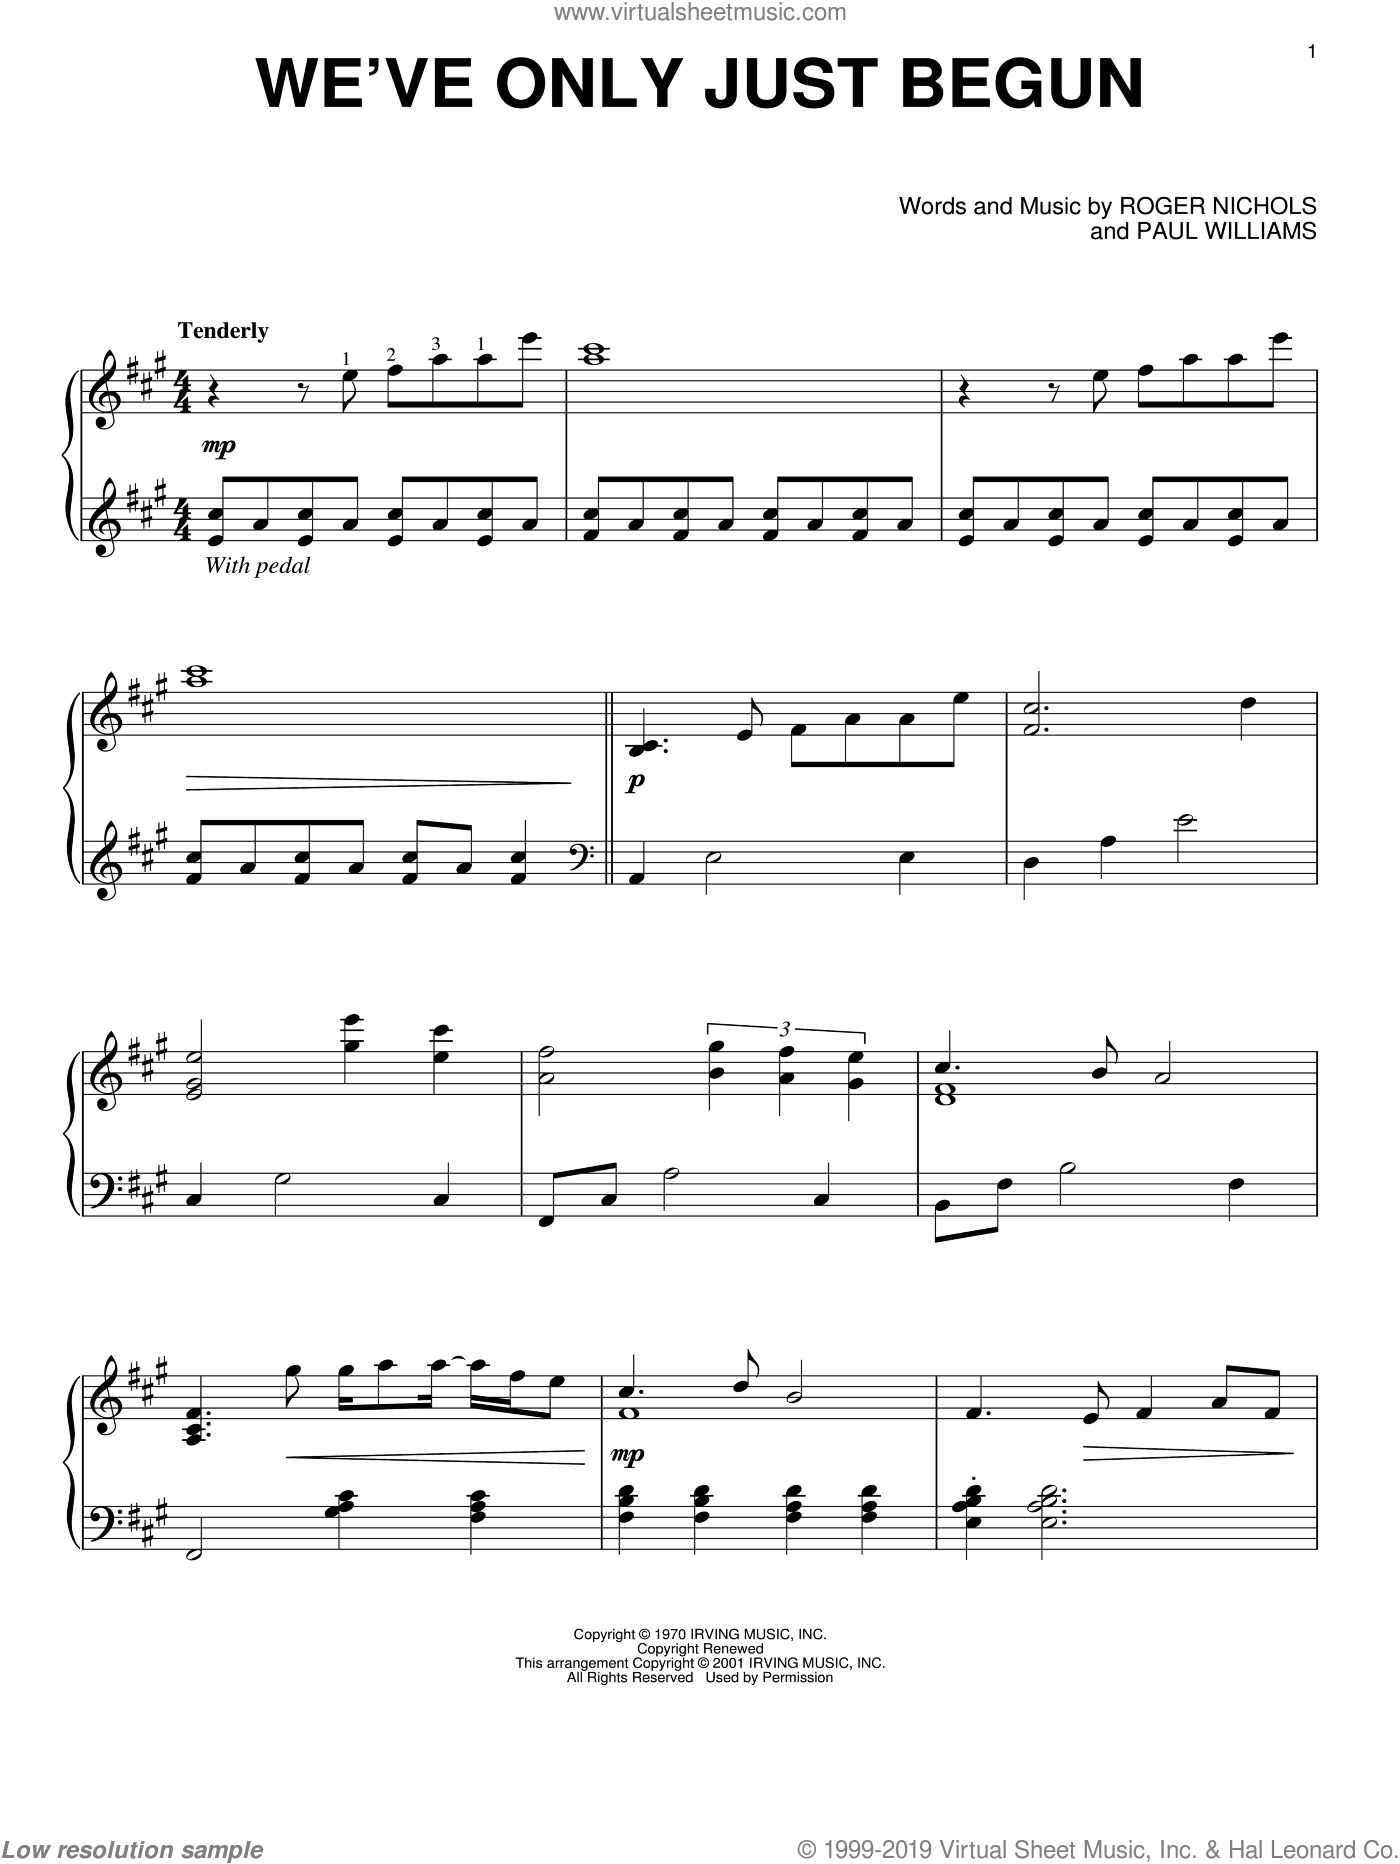 We've Only Just Begun sheet music for piano solo by Roger Nichols